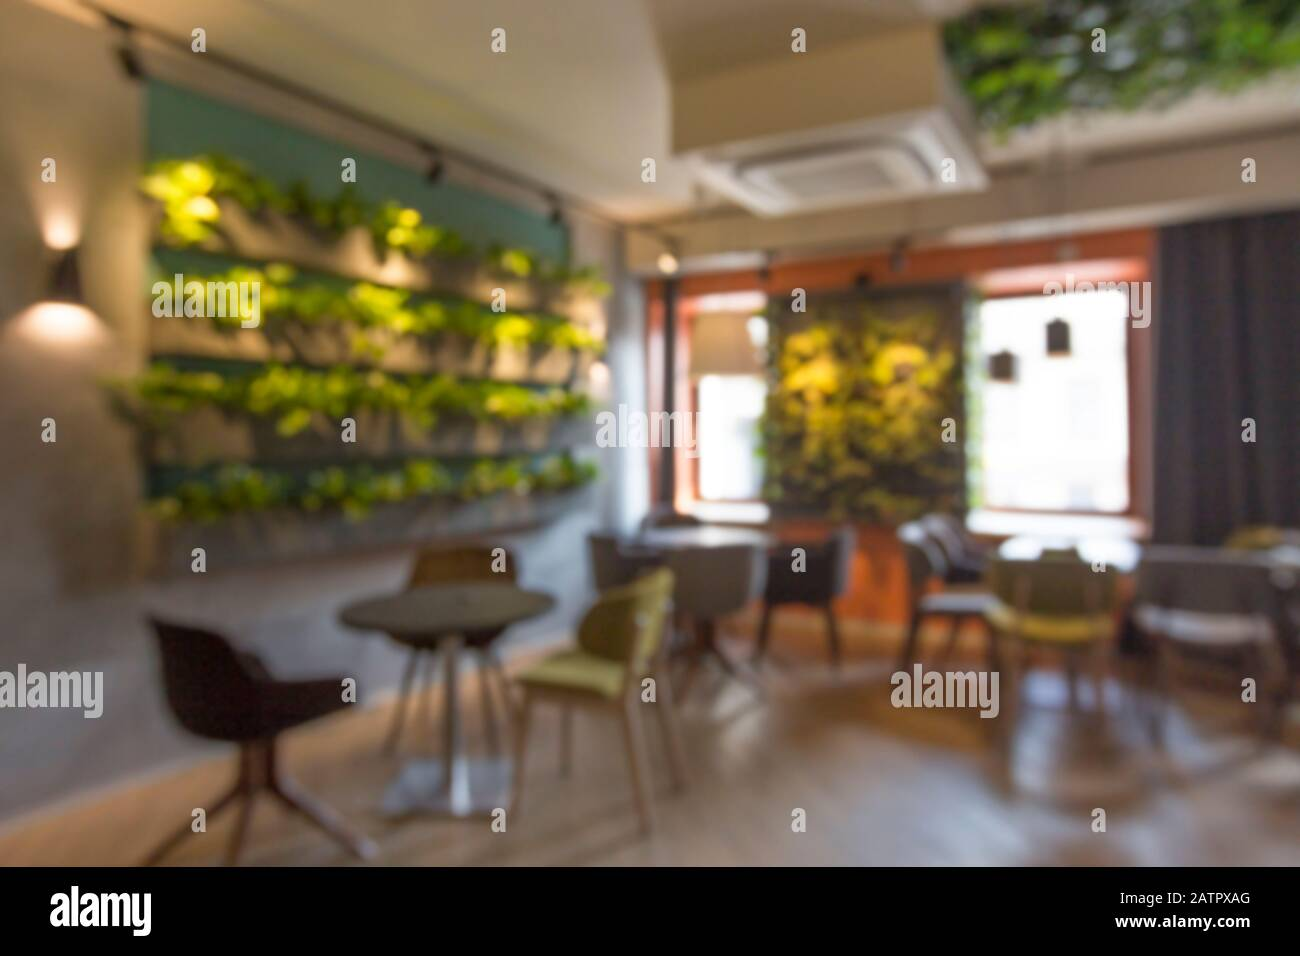 Interior Photography Of Wall Of Plants In Cafe Or Coffee Shop Stock Photo Alamy